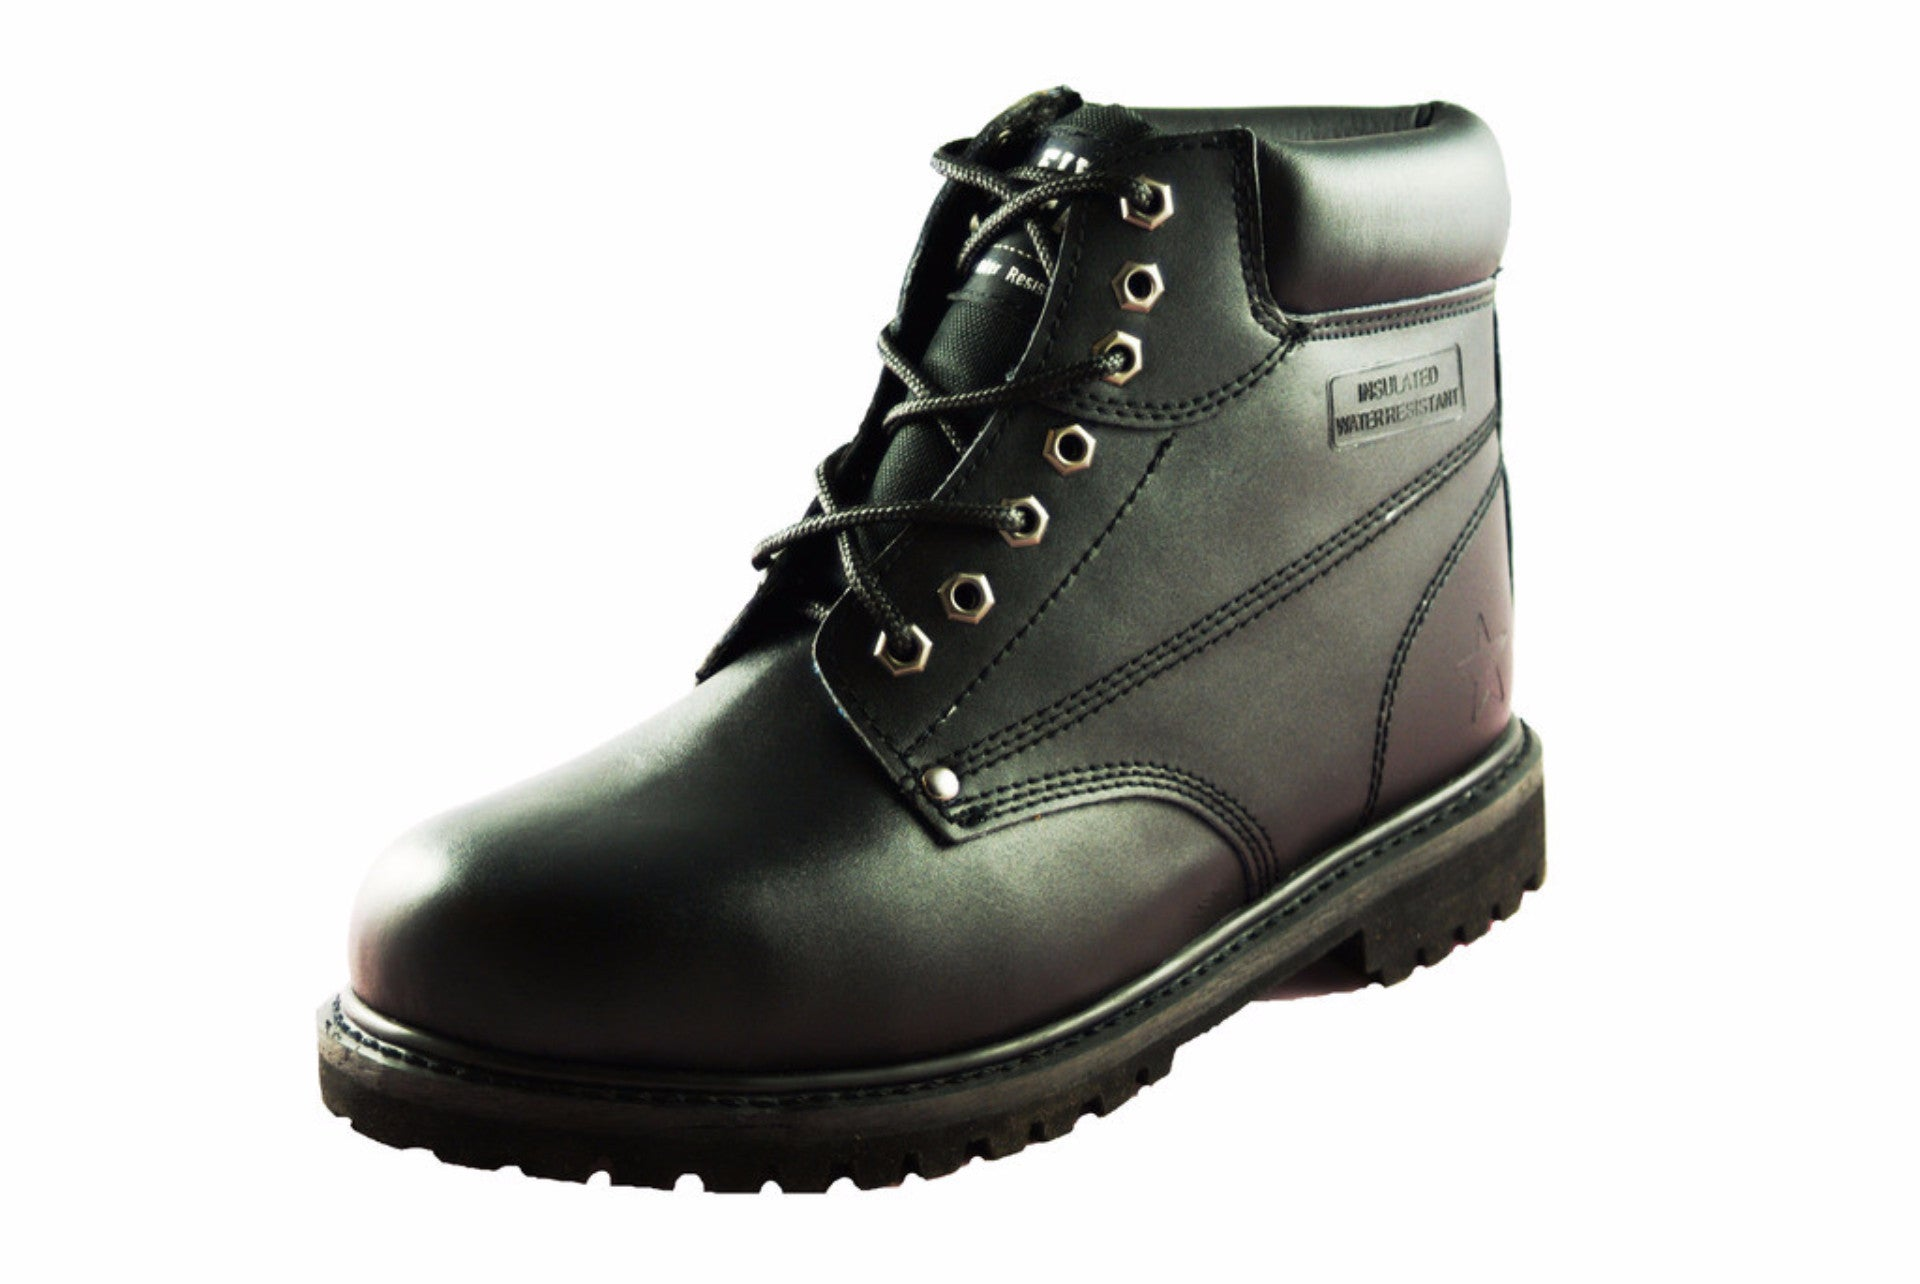 Townforst® Steel Toe Men's Slip Resistant Work Safety Boot Black